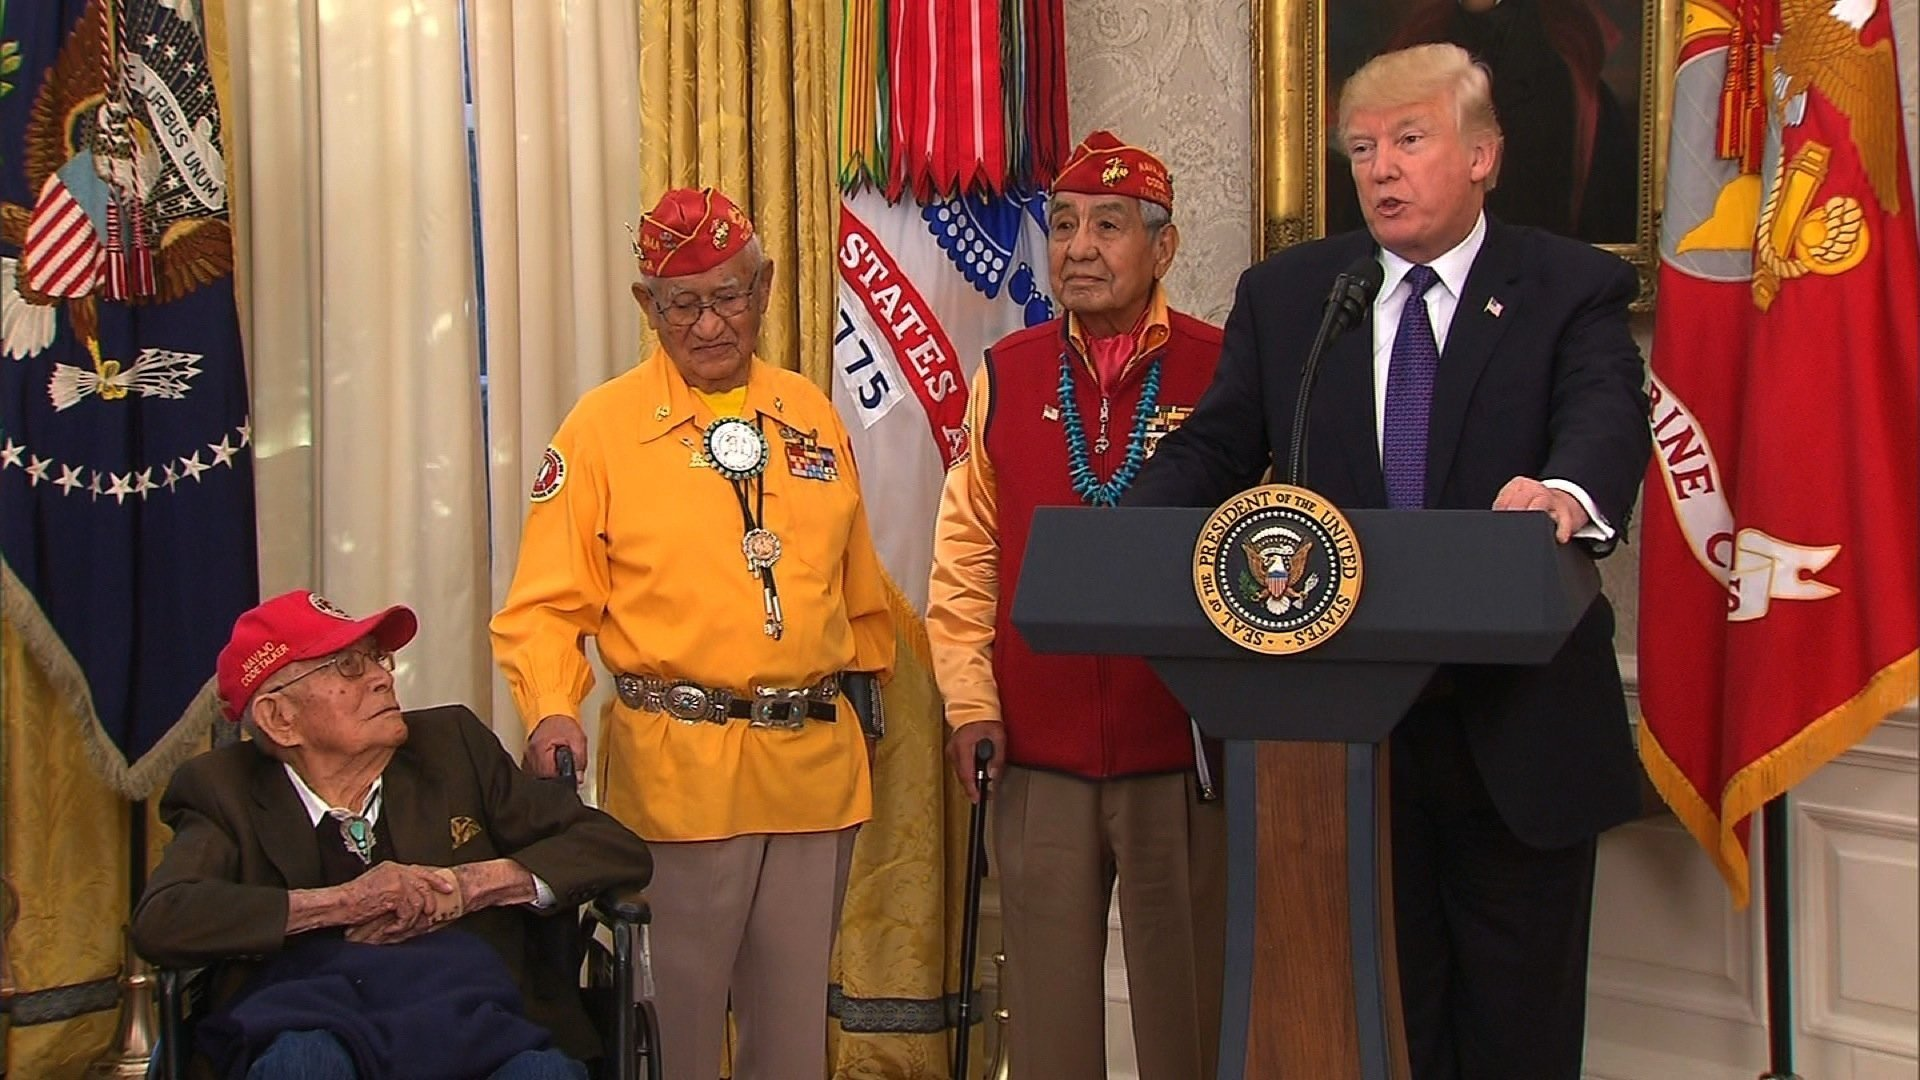 President Trump speaks at an event at the White House honoring Navajo code talkers